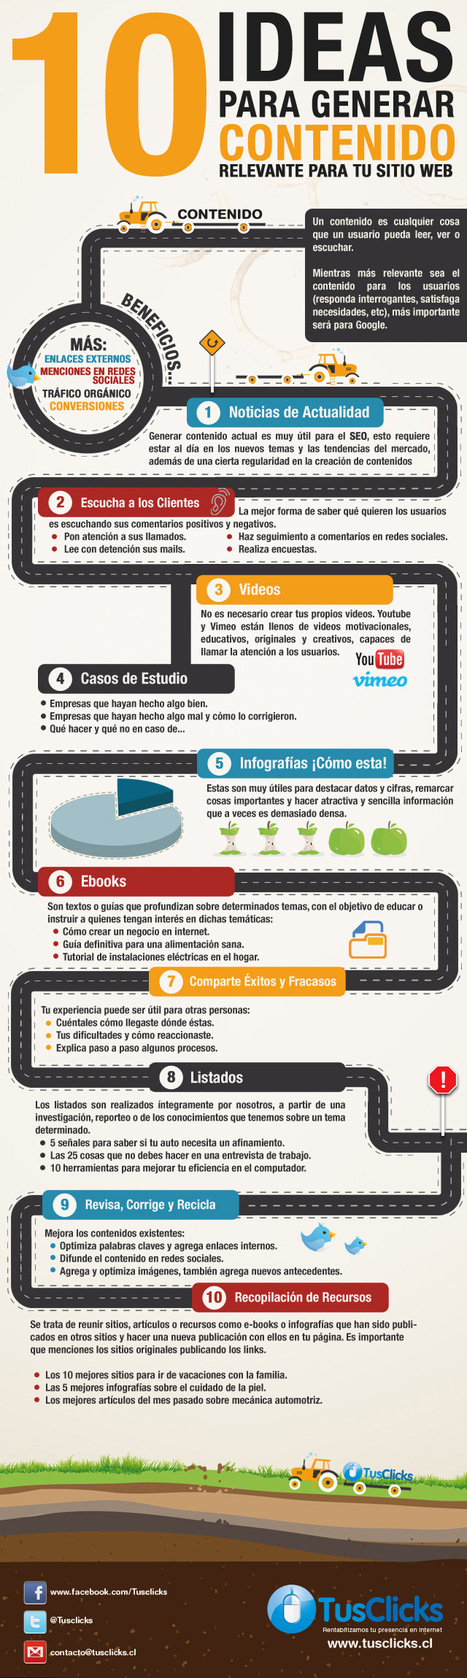 Ideas para crear contenido relevante en tu Web o Blog | Marketing Digital y comercio electrónico | Scoop.it